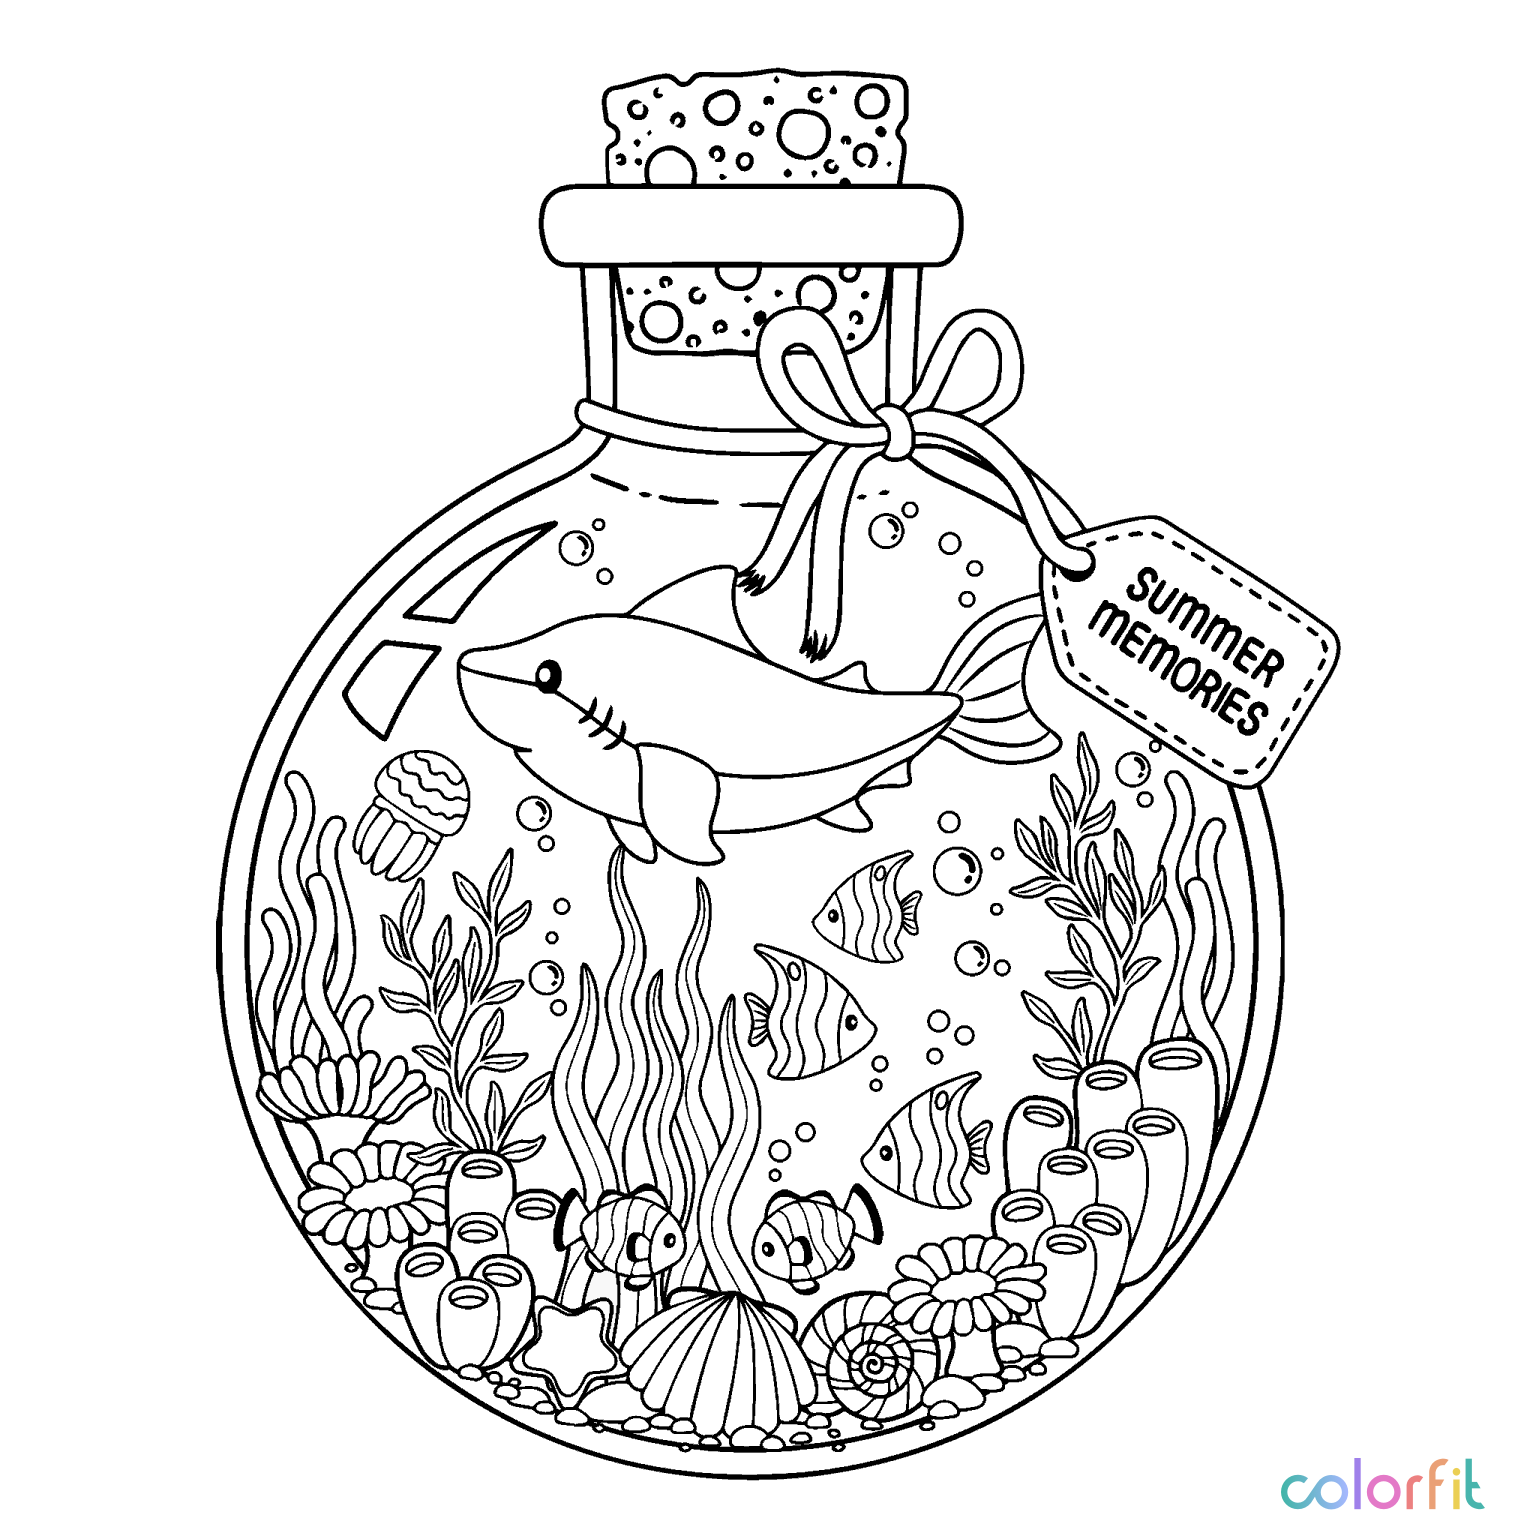 So Cute I Always Wanted A Pet Shark Coloring Books Coloring Book Pages Coloring Pages